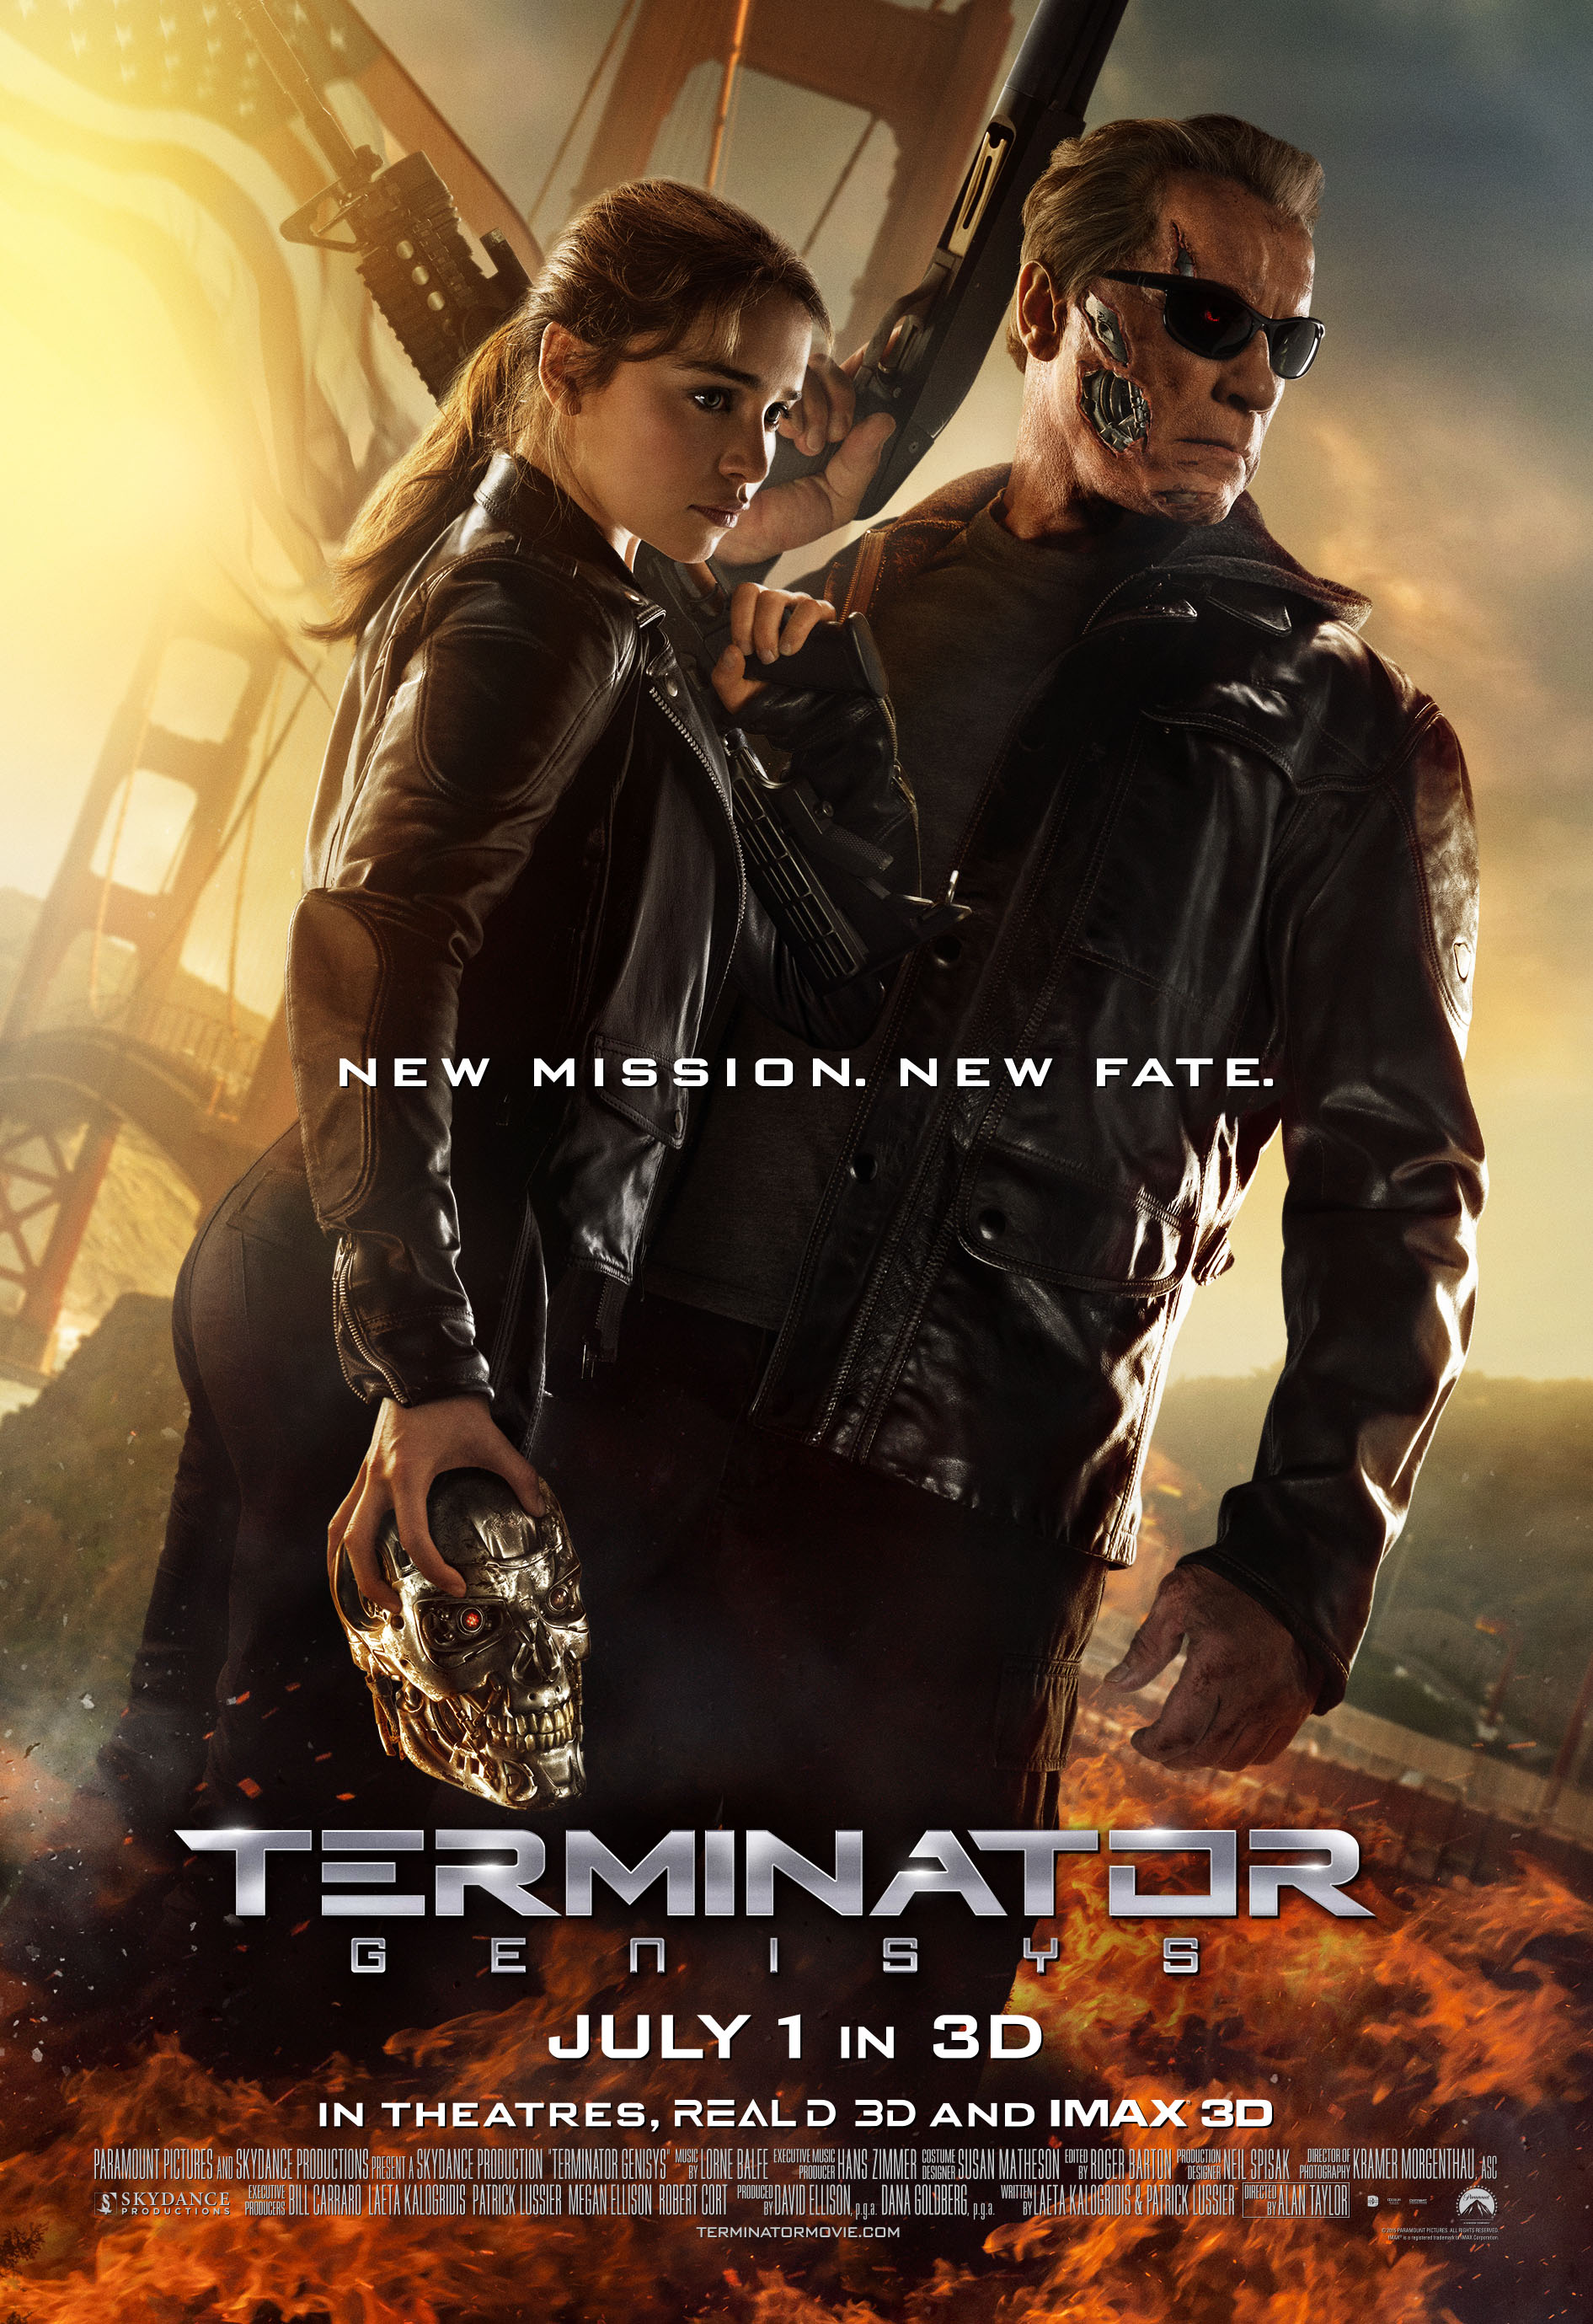 FILM REVIEW – TERMINATOR: GENISYS (2015)